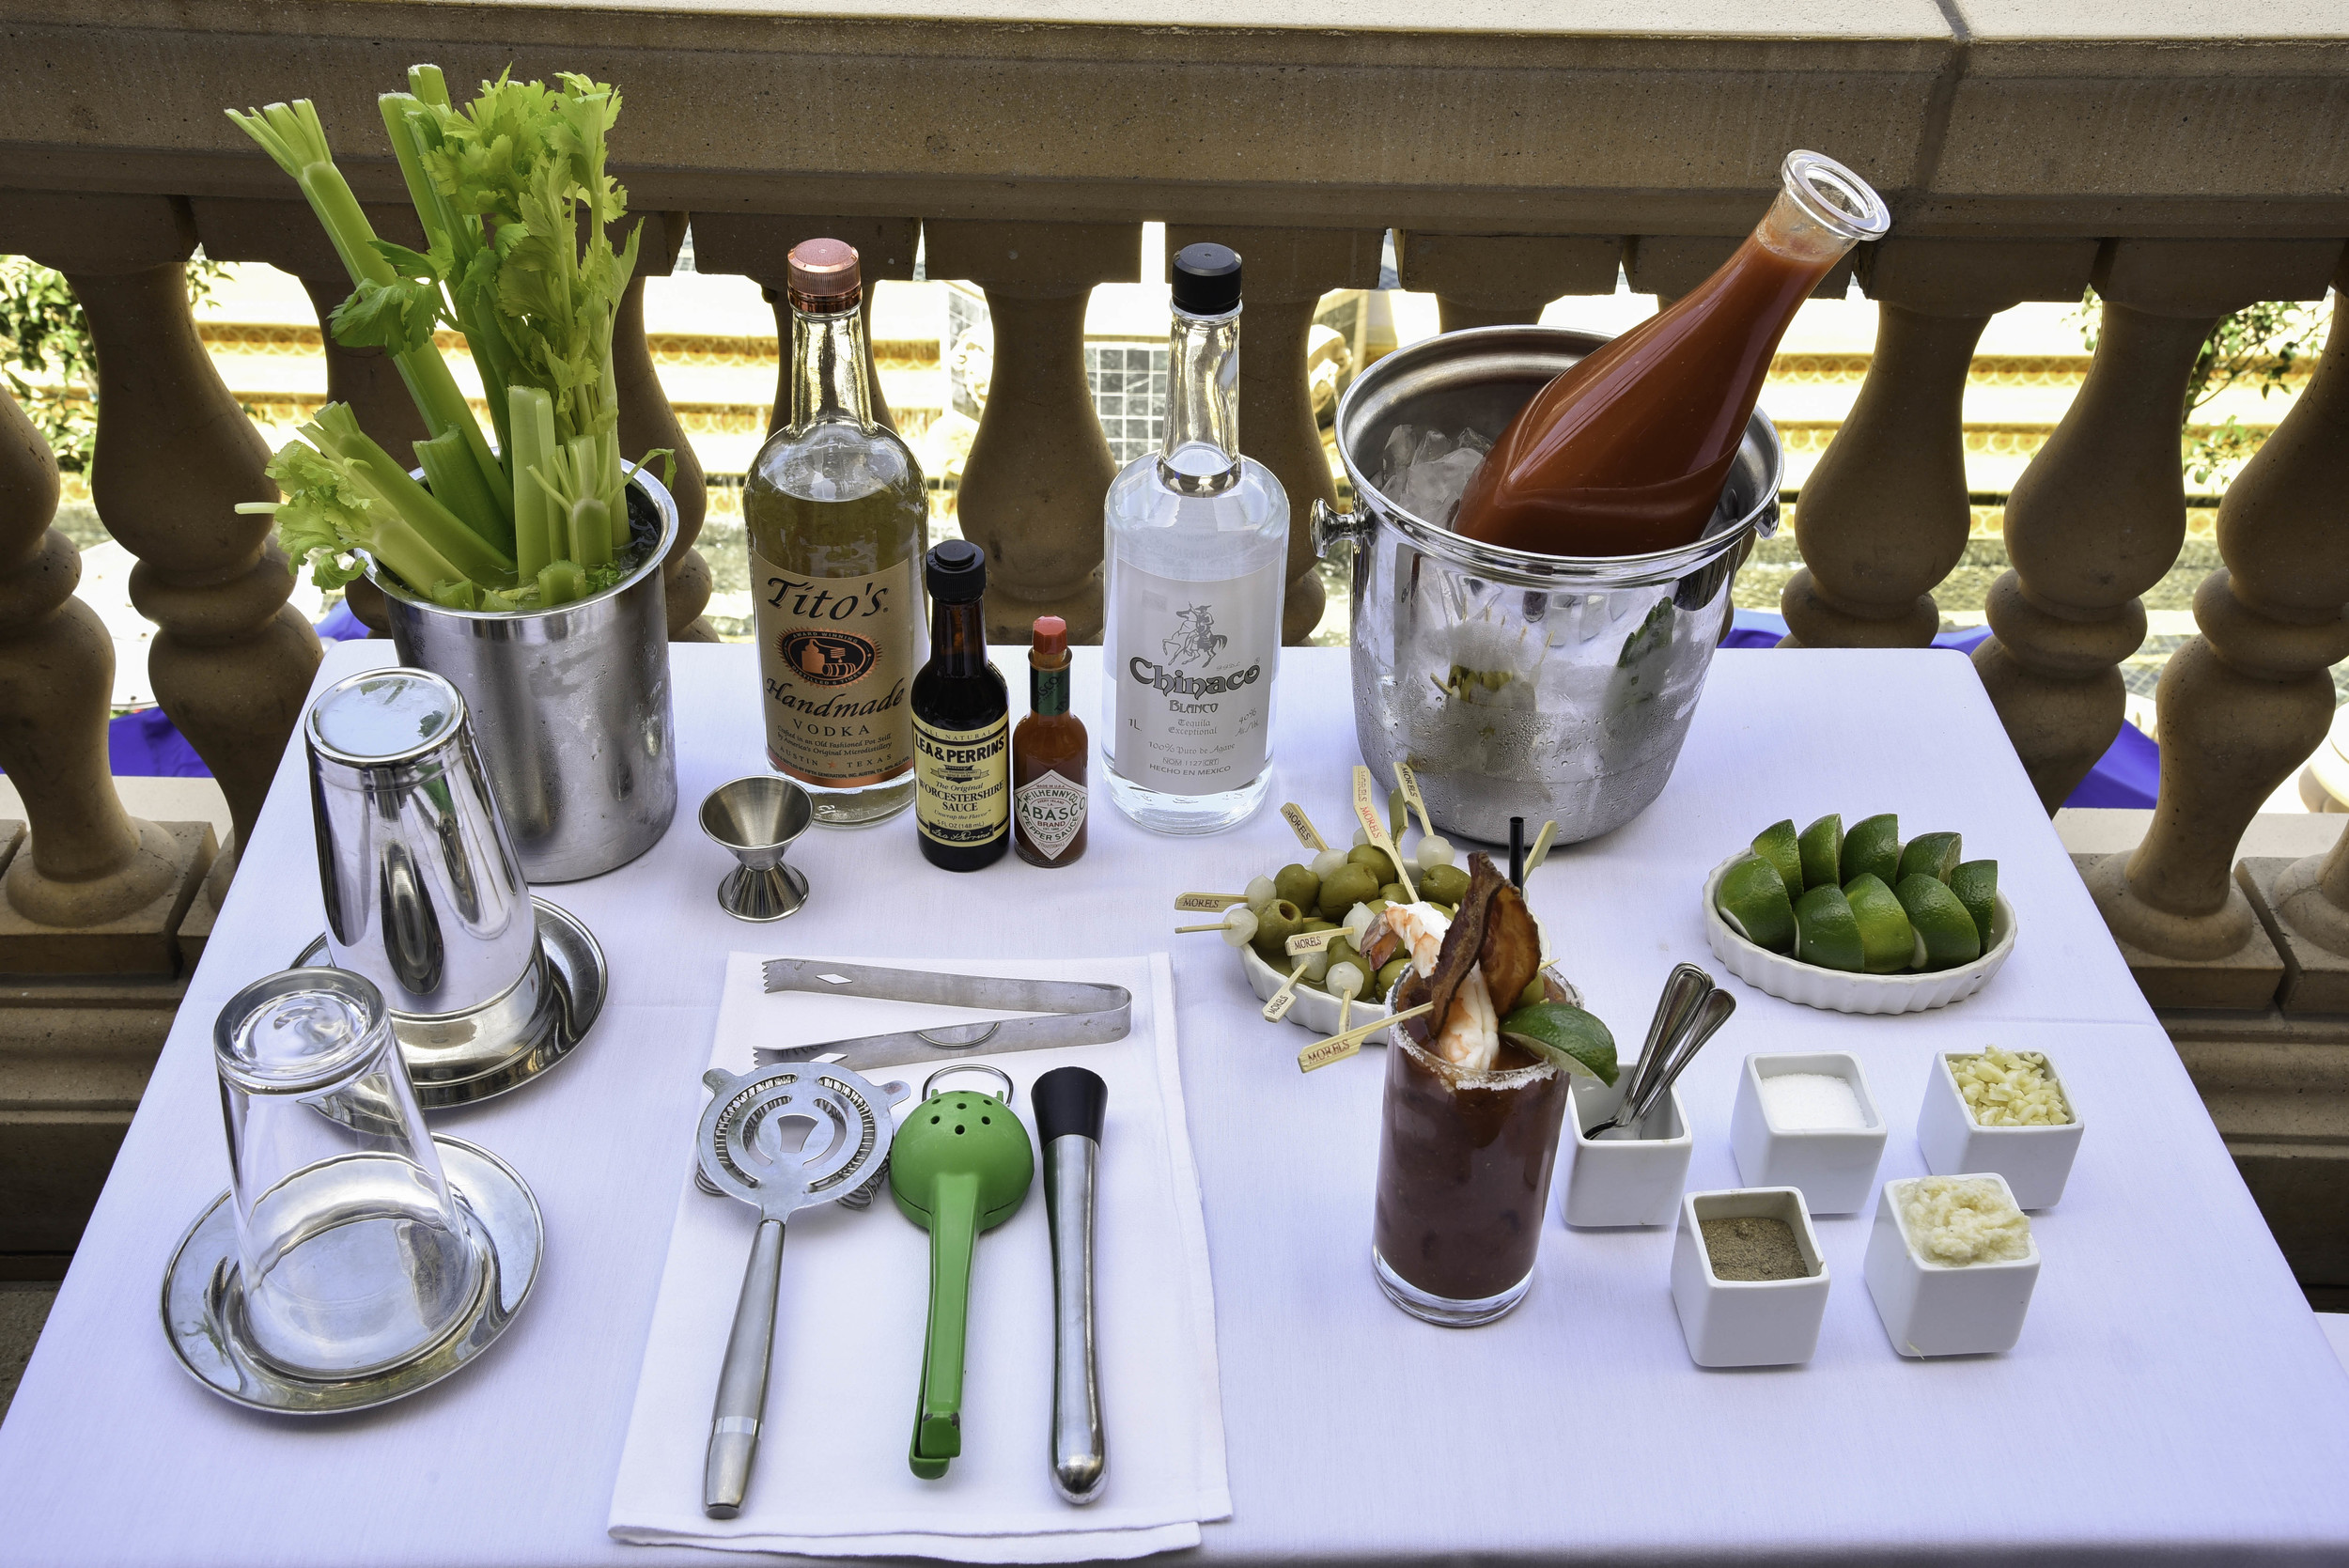 The tableside bloody mary cart